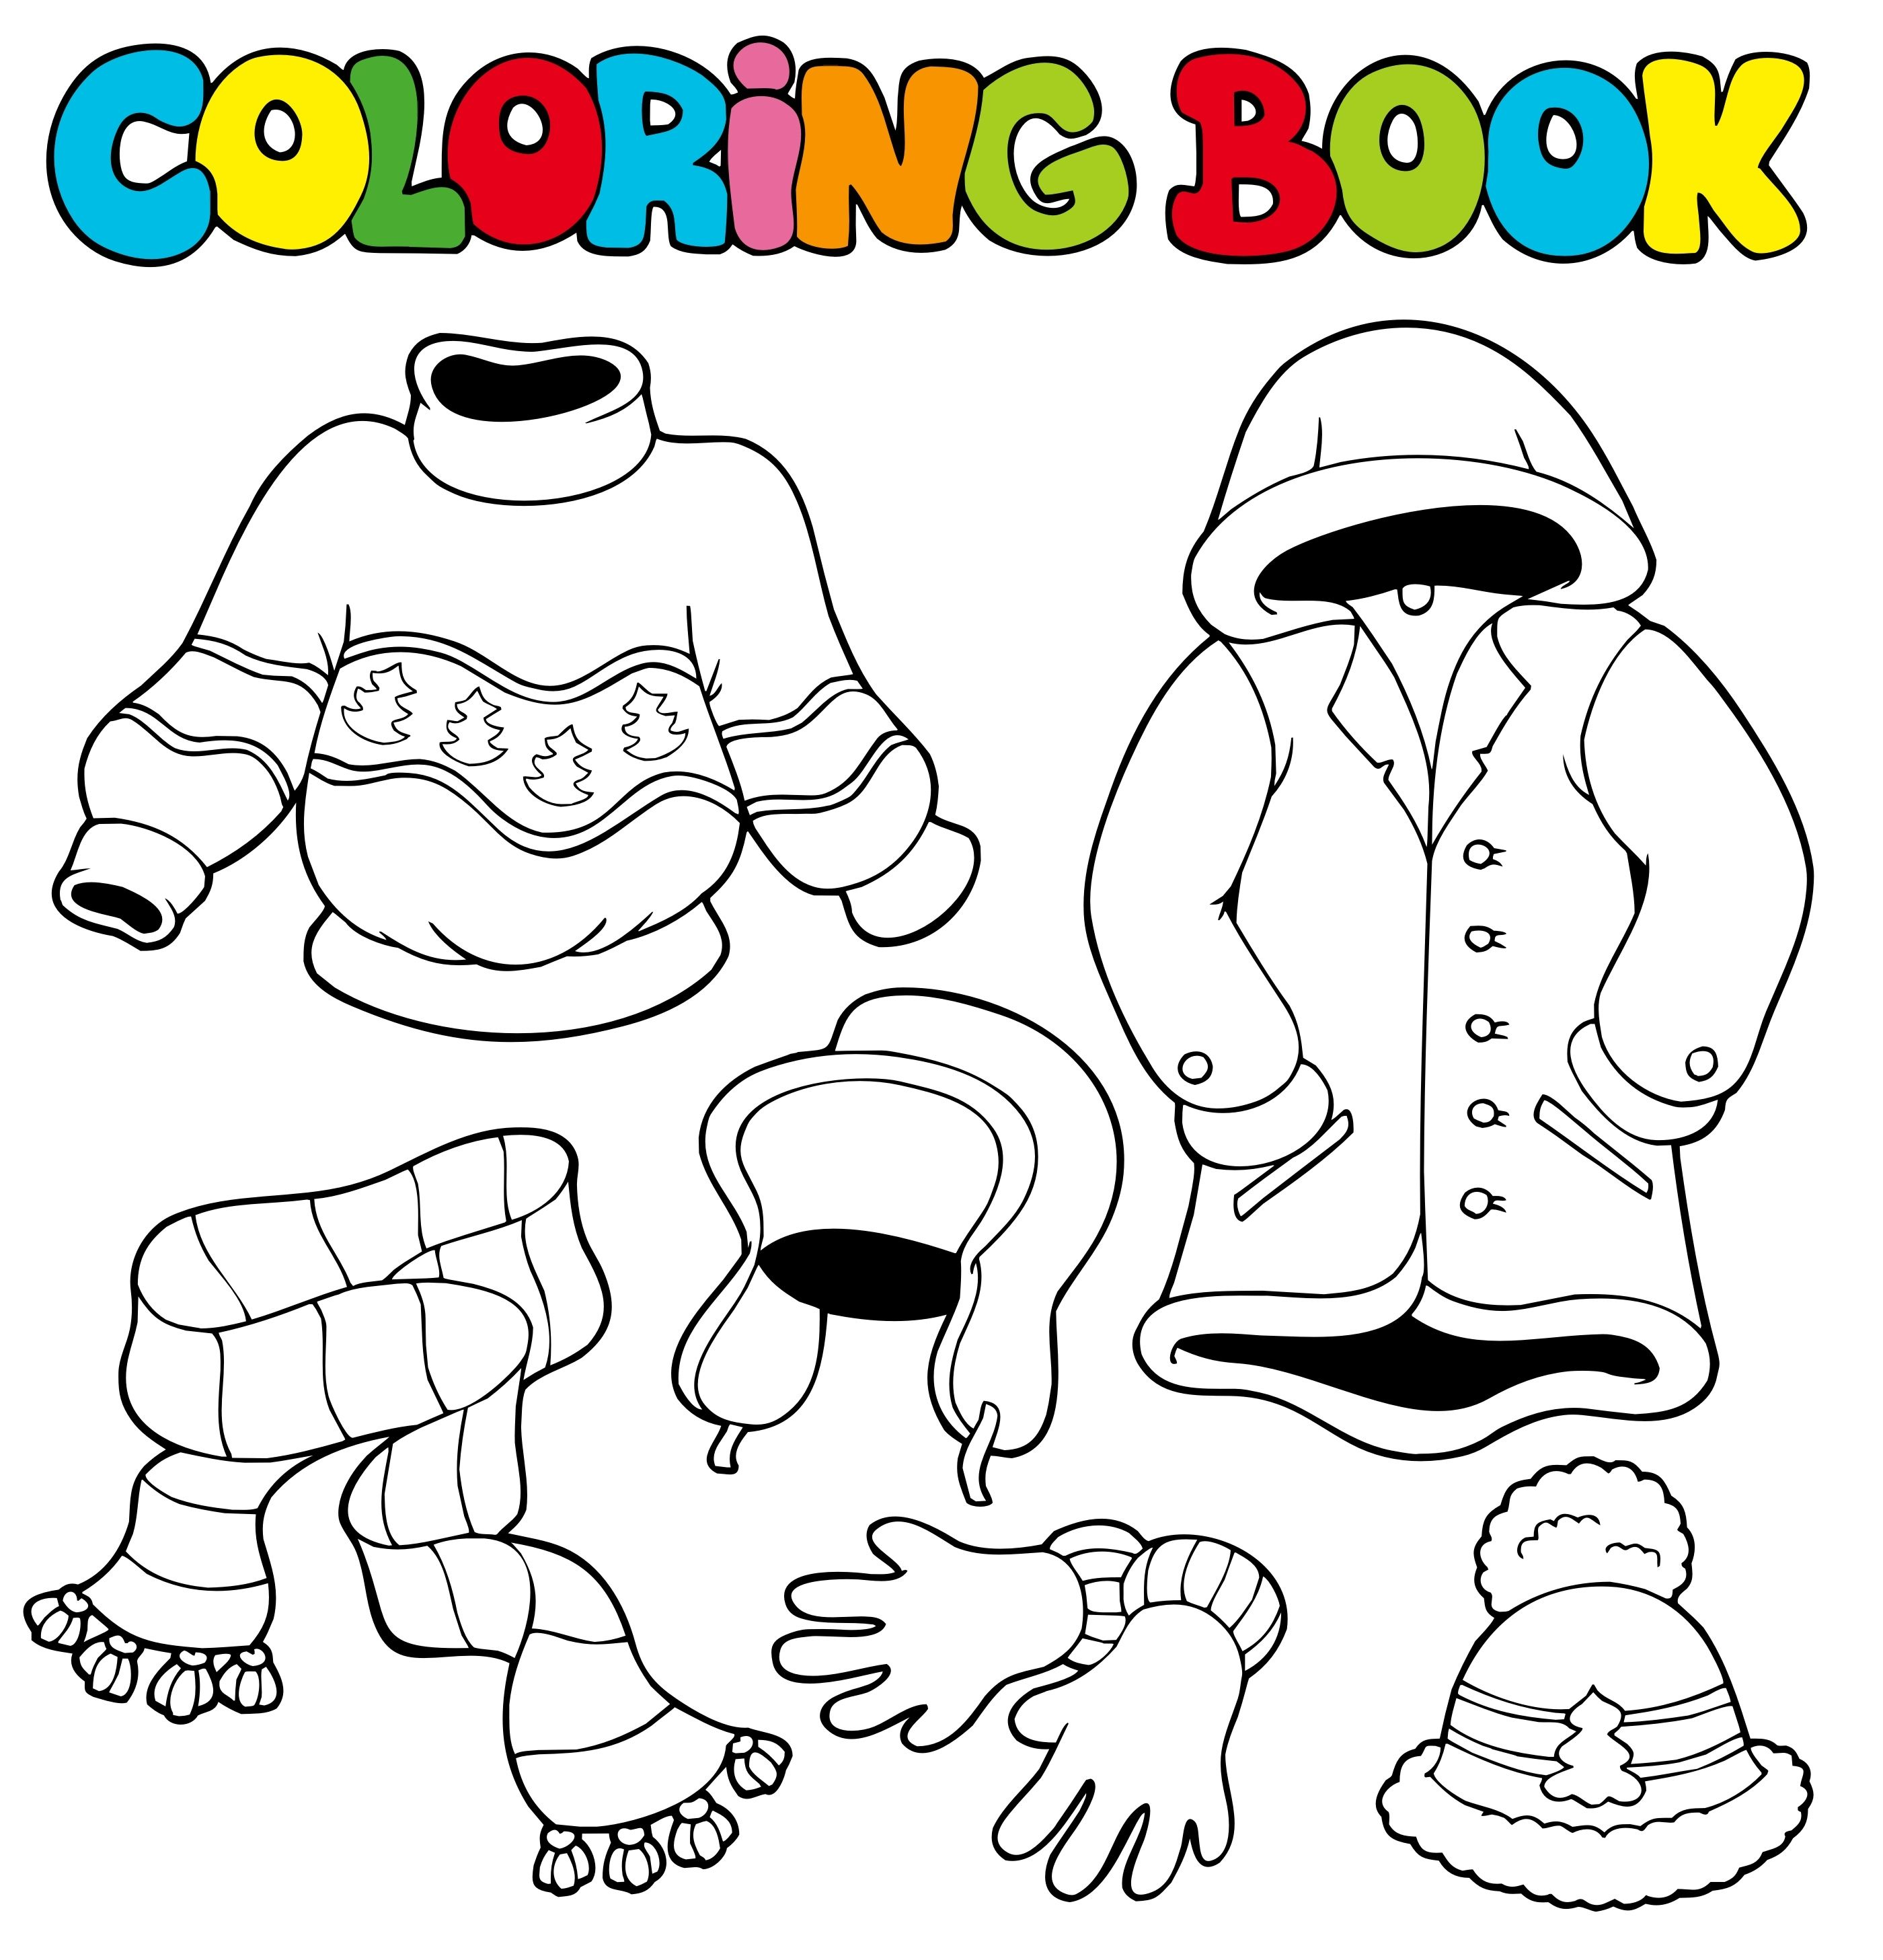 4 Seasons Coloring Pages 187 | Free Printable Coloring Pages ...